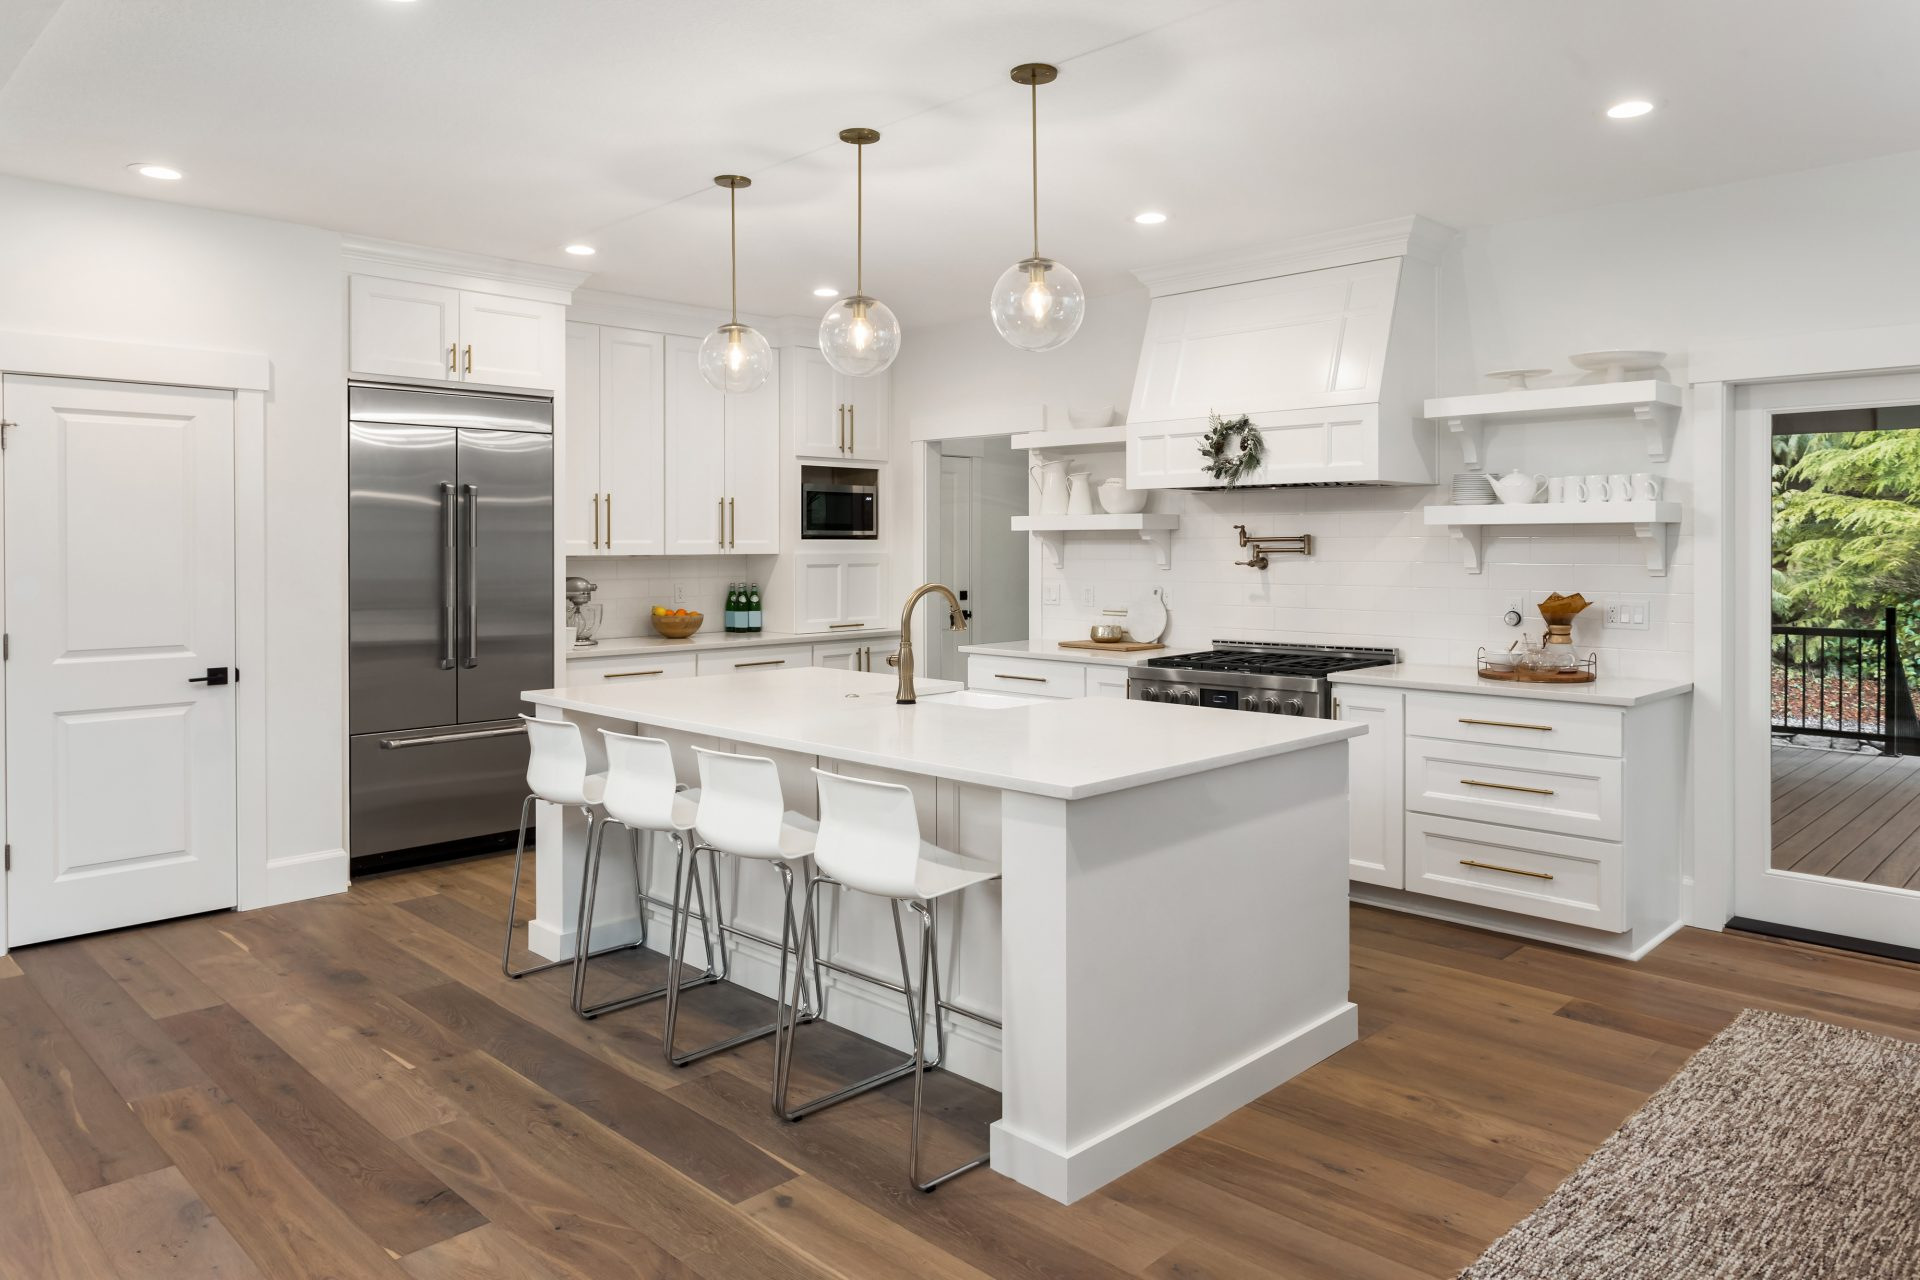 Shaker cabinets paired with open shelving